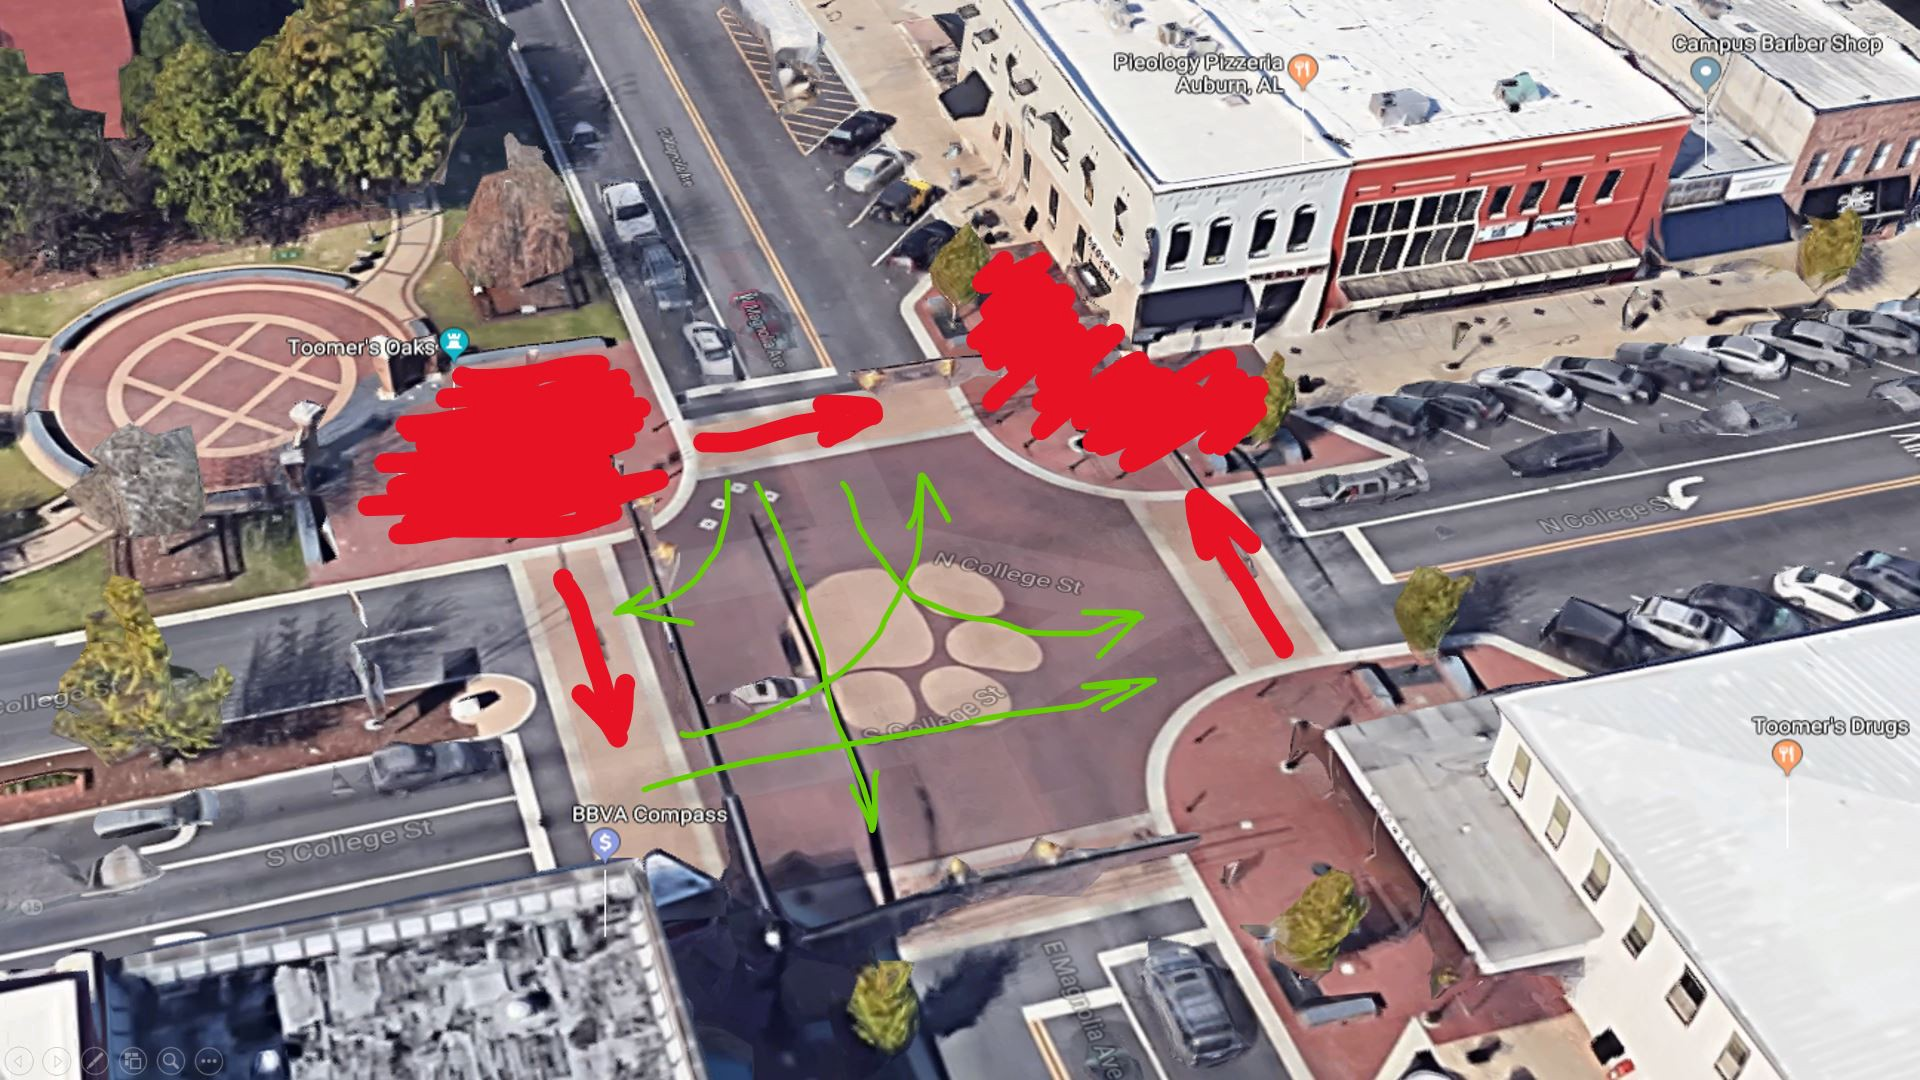 Location ytics: Exploring Foot Traffic at Your New ... on google traffic map boston, google maps sidewalk view, google india map with city, google live traffic, google maps bird's eye view, google maps street view, google maps map view, google traffic data, google maps terrain view,